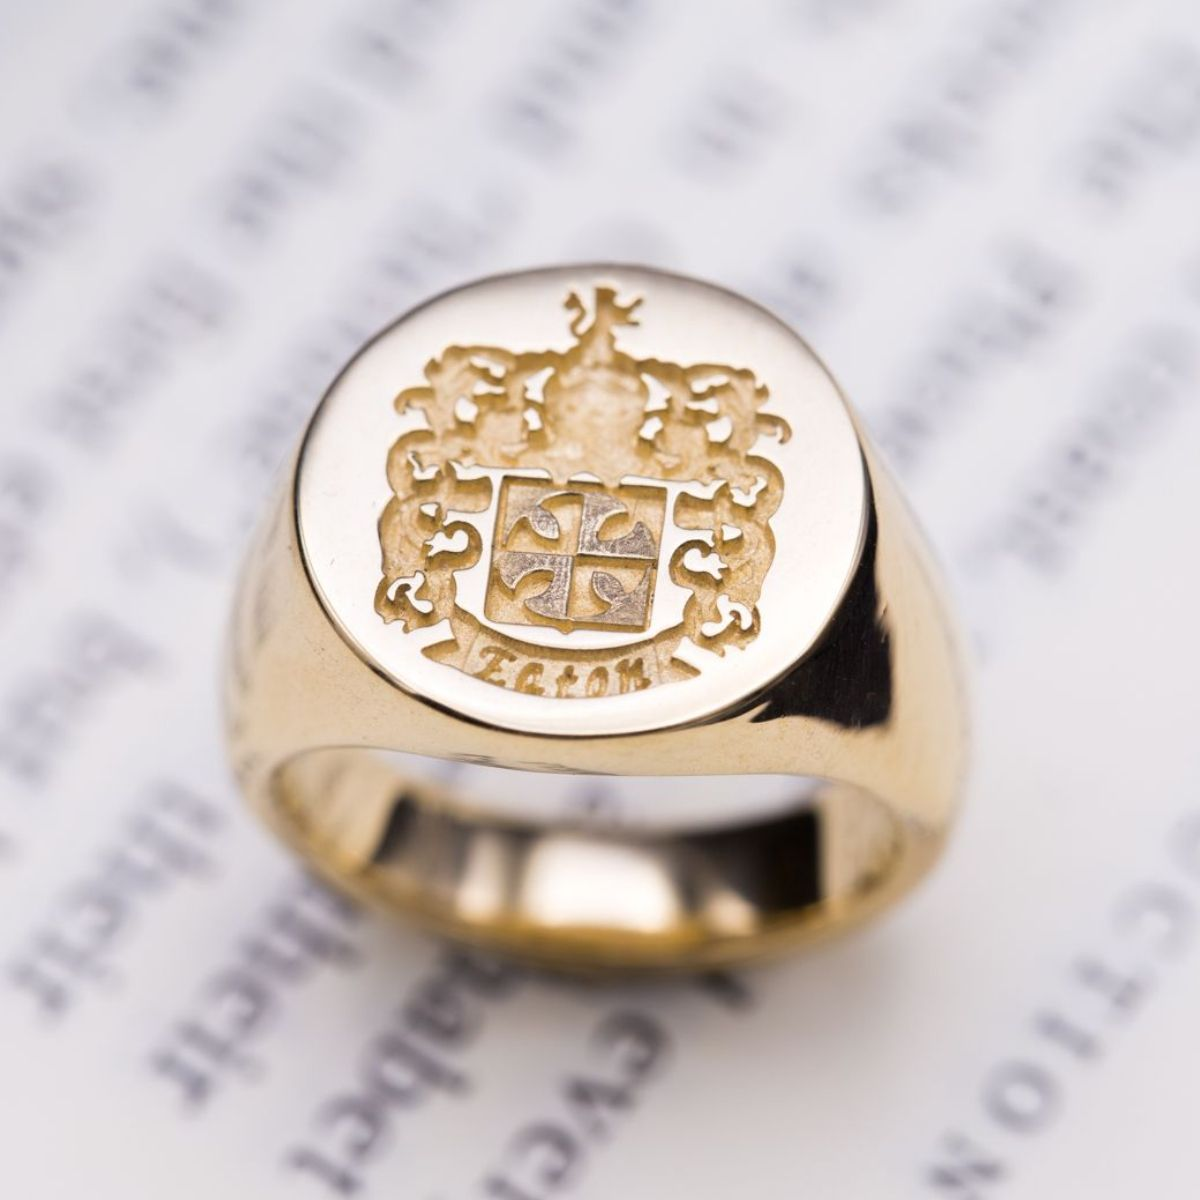 Custom Signet Rings, Family Crest Rings & Coat Of Arms